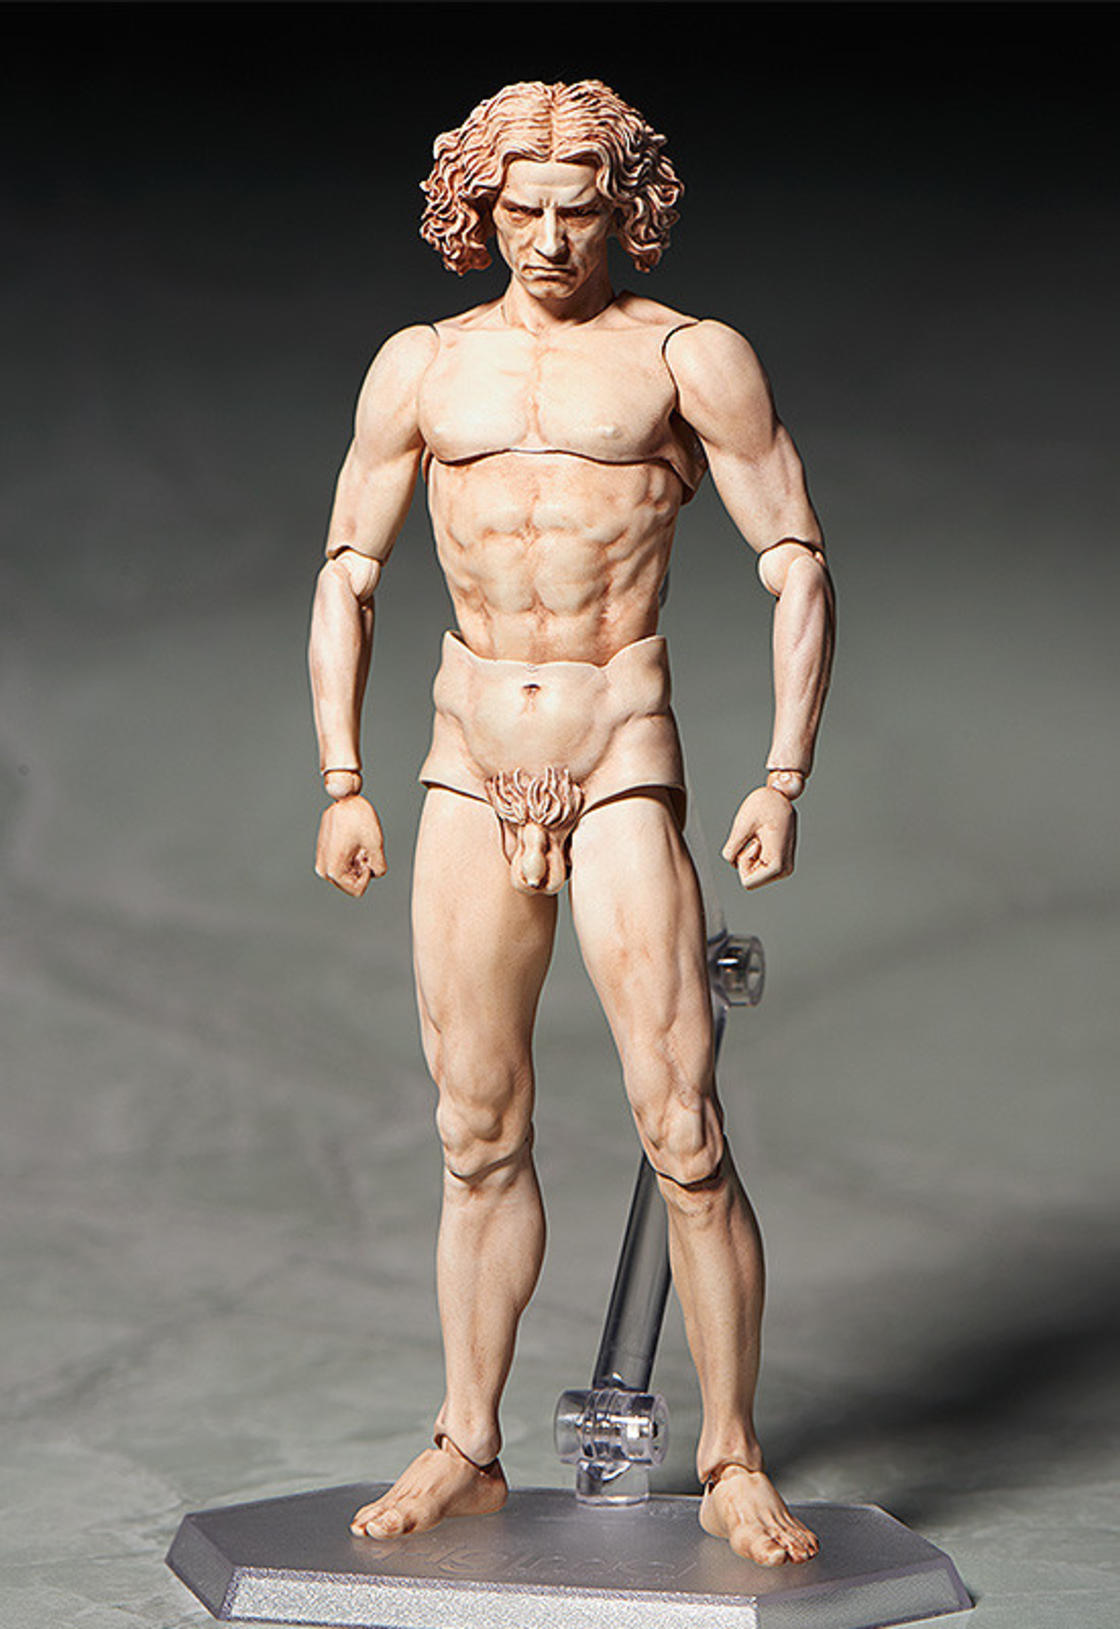 Vitruvian-Man-Action-Figure-3.jpg